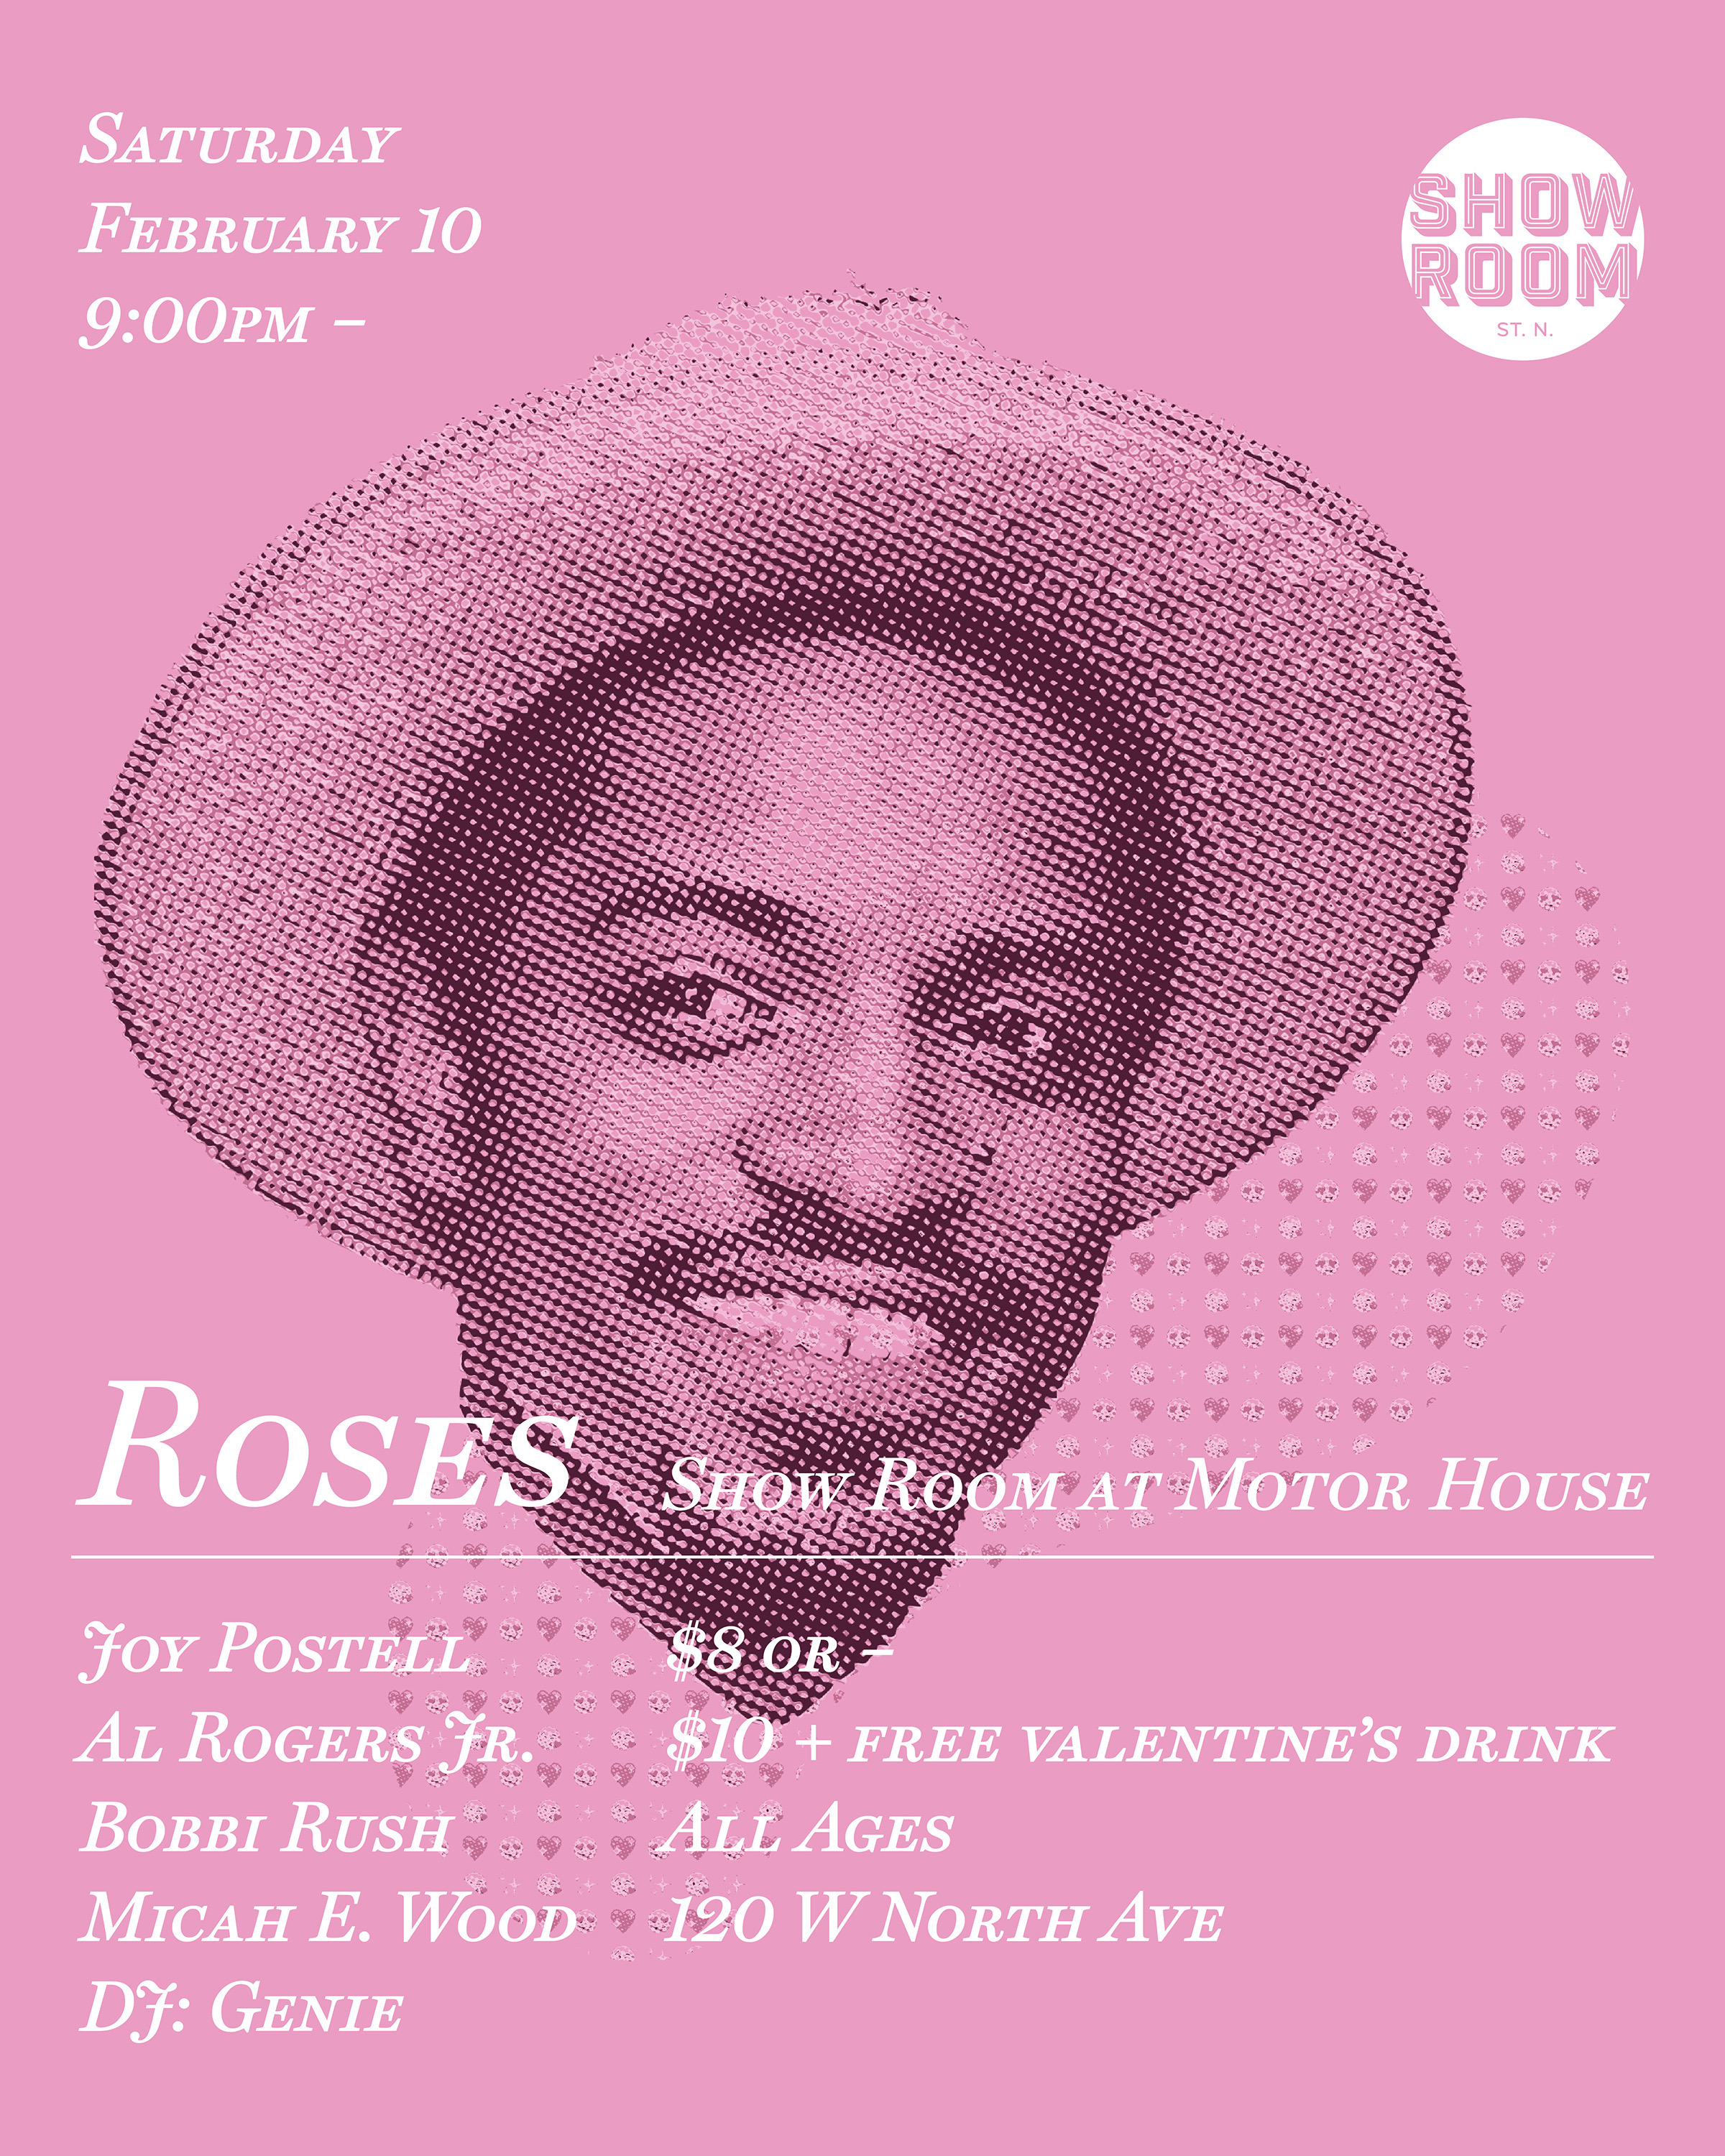 roses poster.jpeg